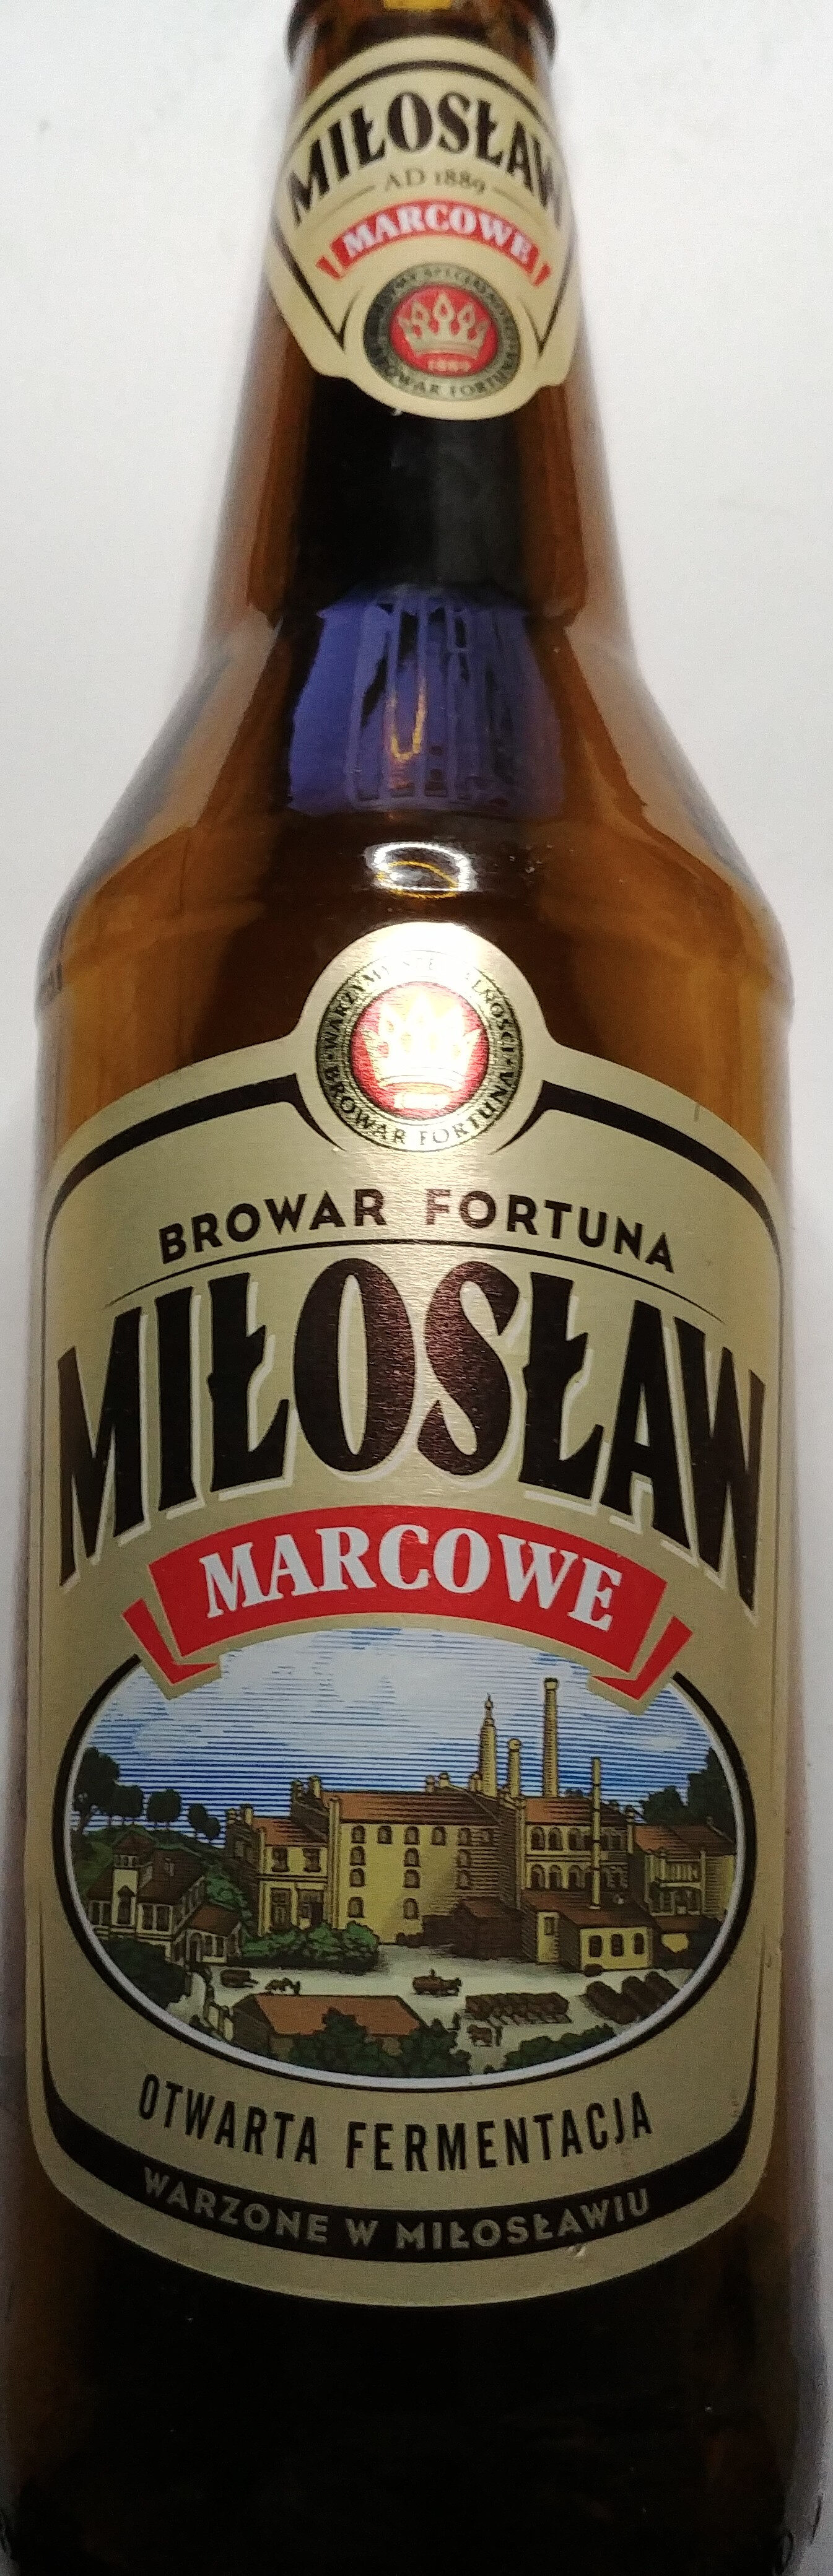 Marcowe - Product - pl